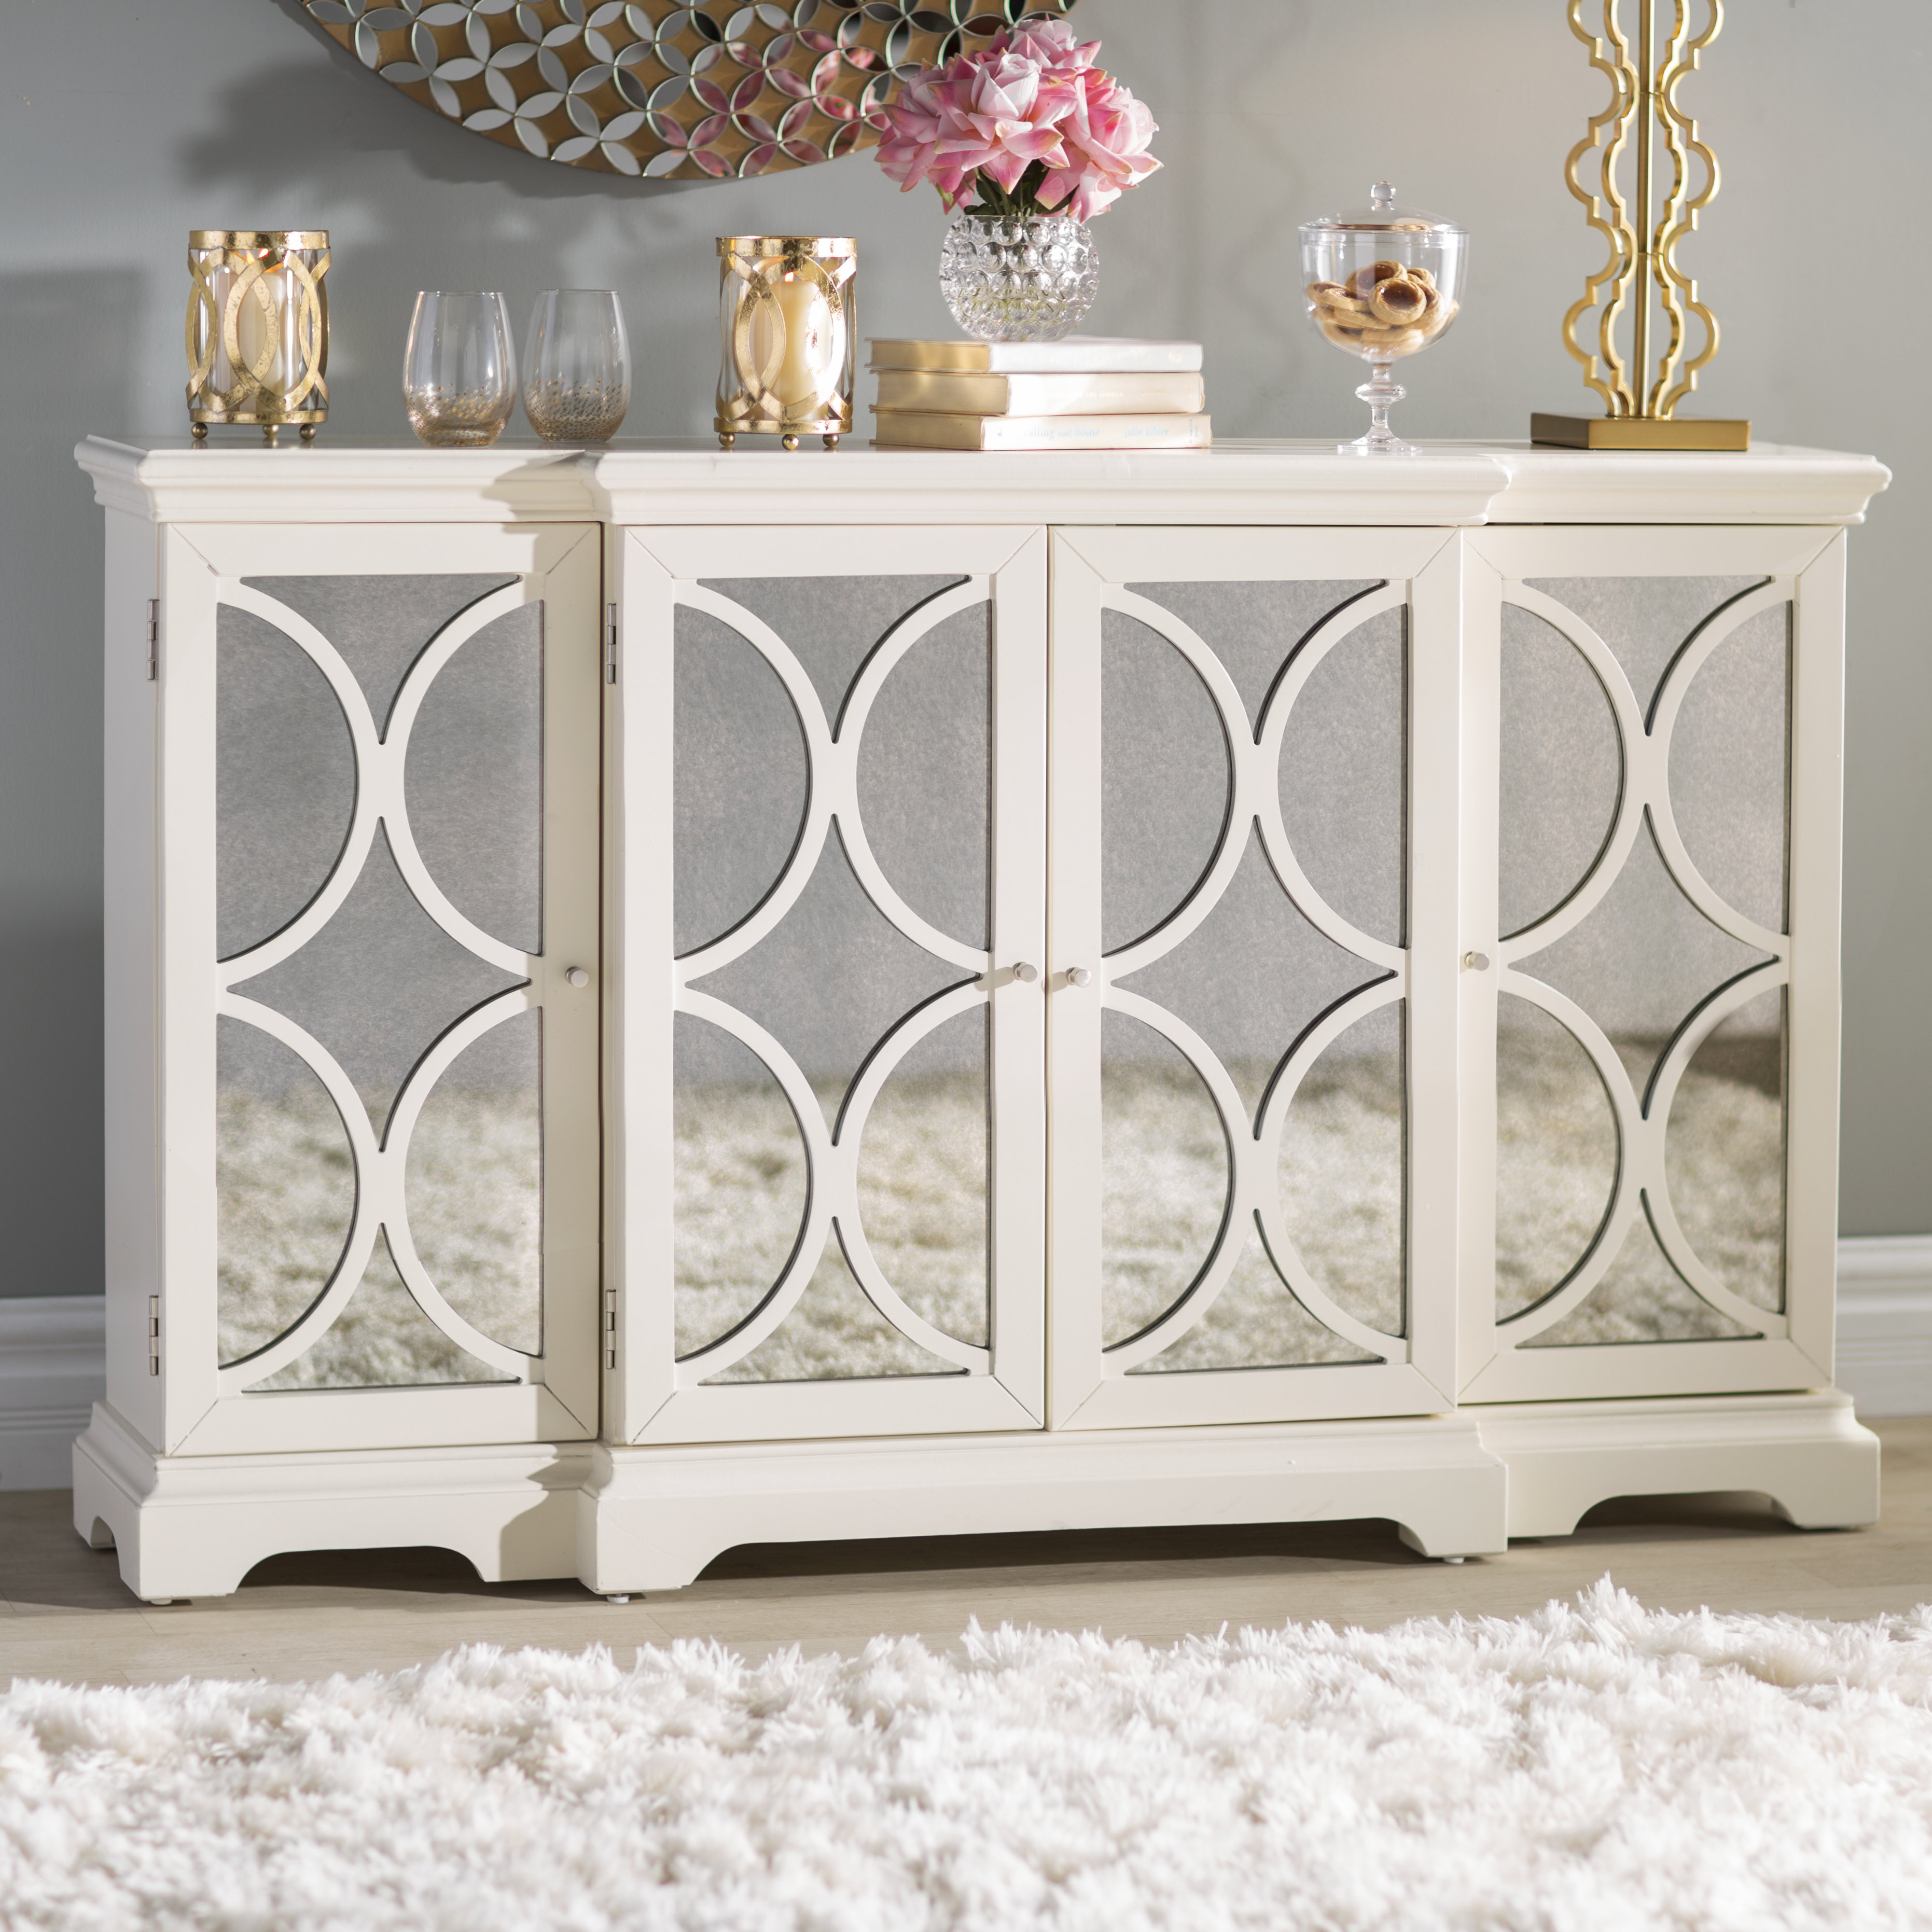 60 Inch Credenza | Wayfair Pertaining To Most Recently Released Senda Credenzas (View 3 of 20)